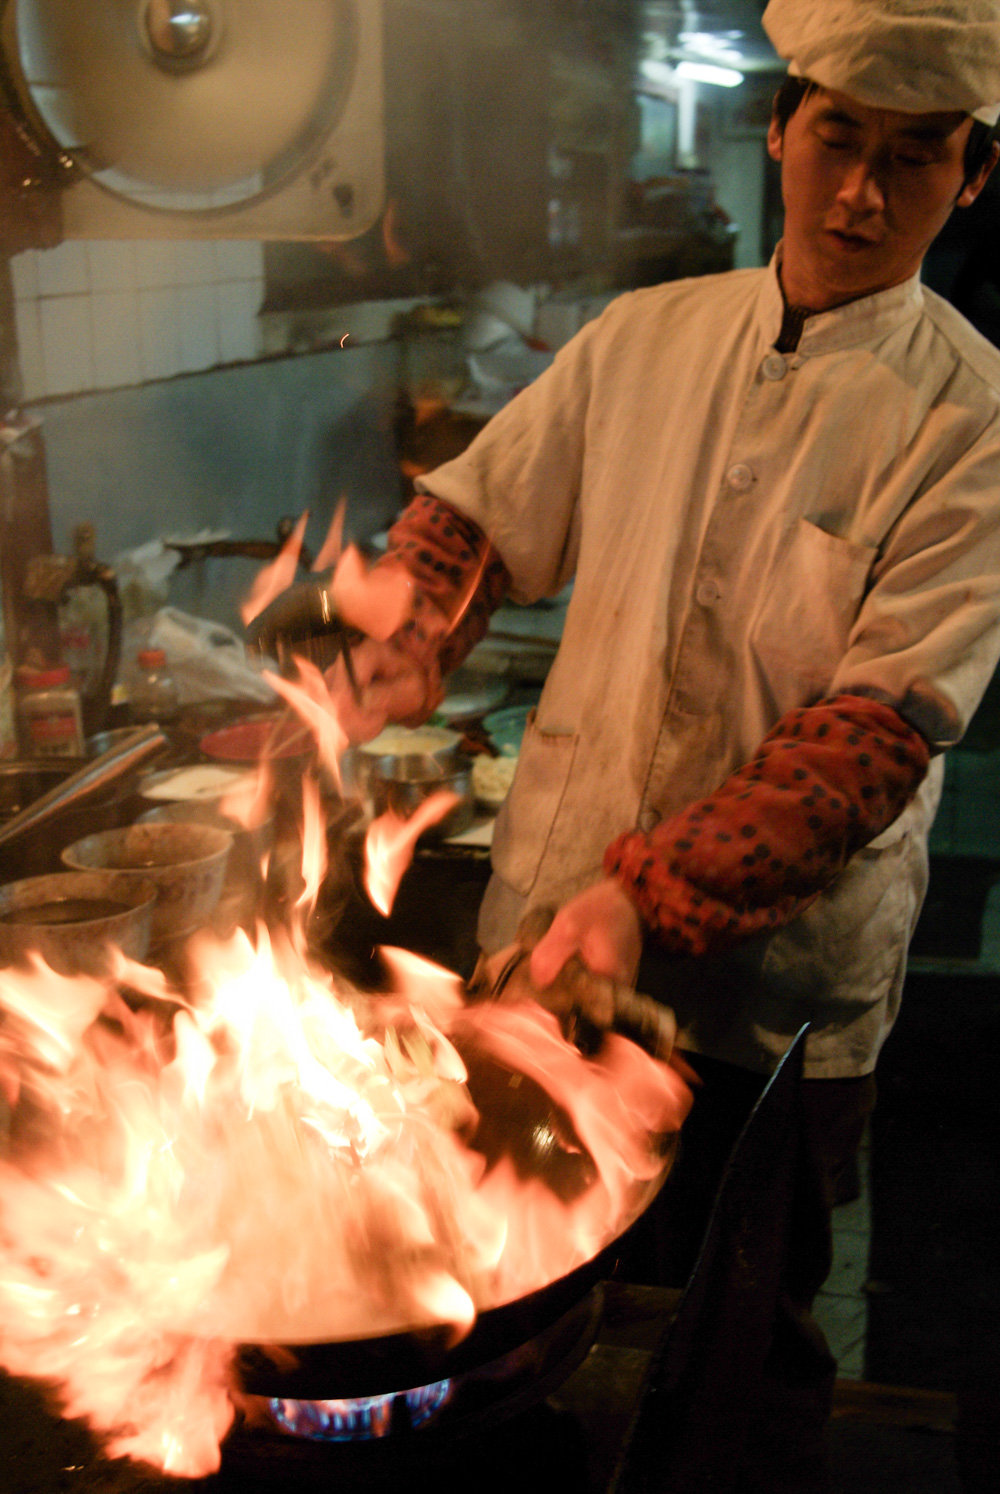 Like cooking with dynamite: street food kitchens in Asia.